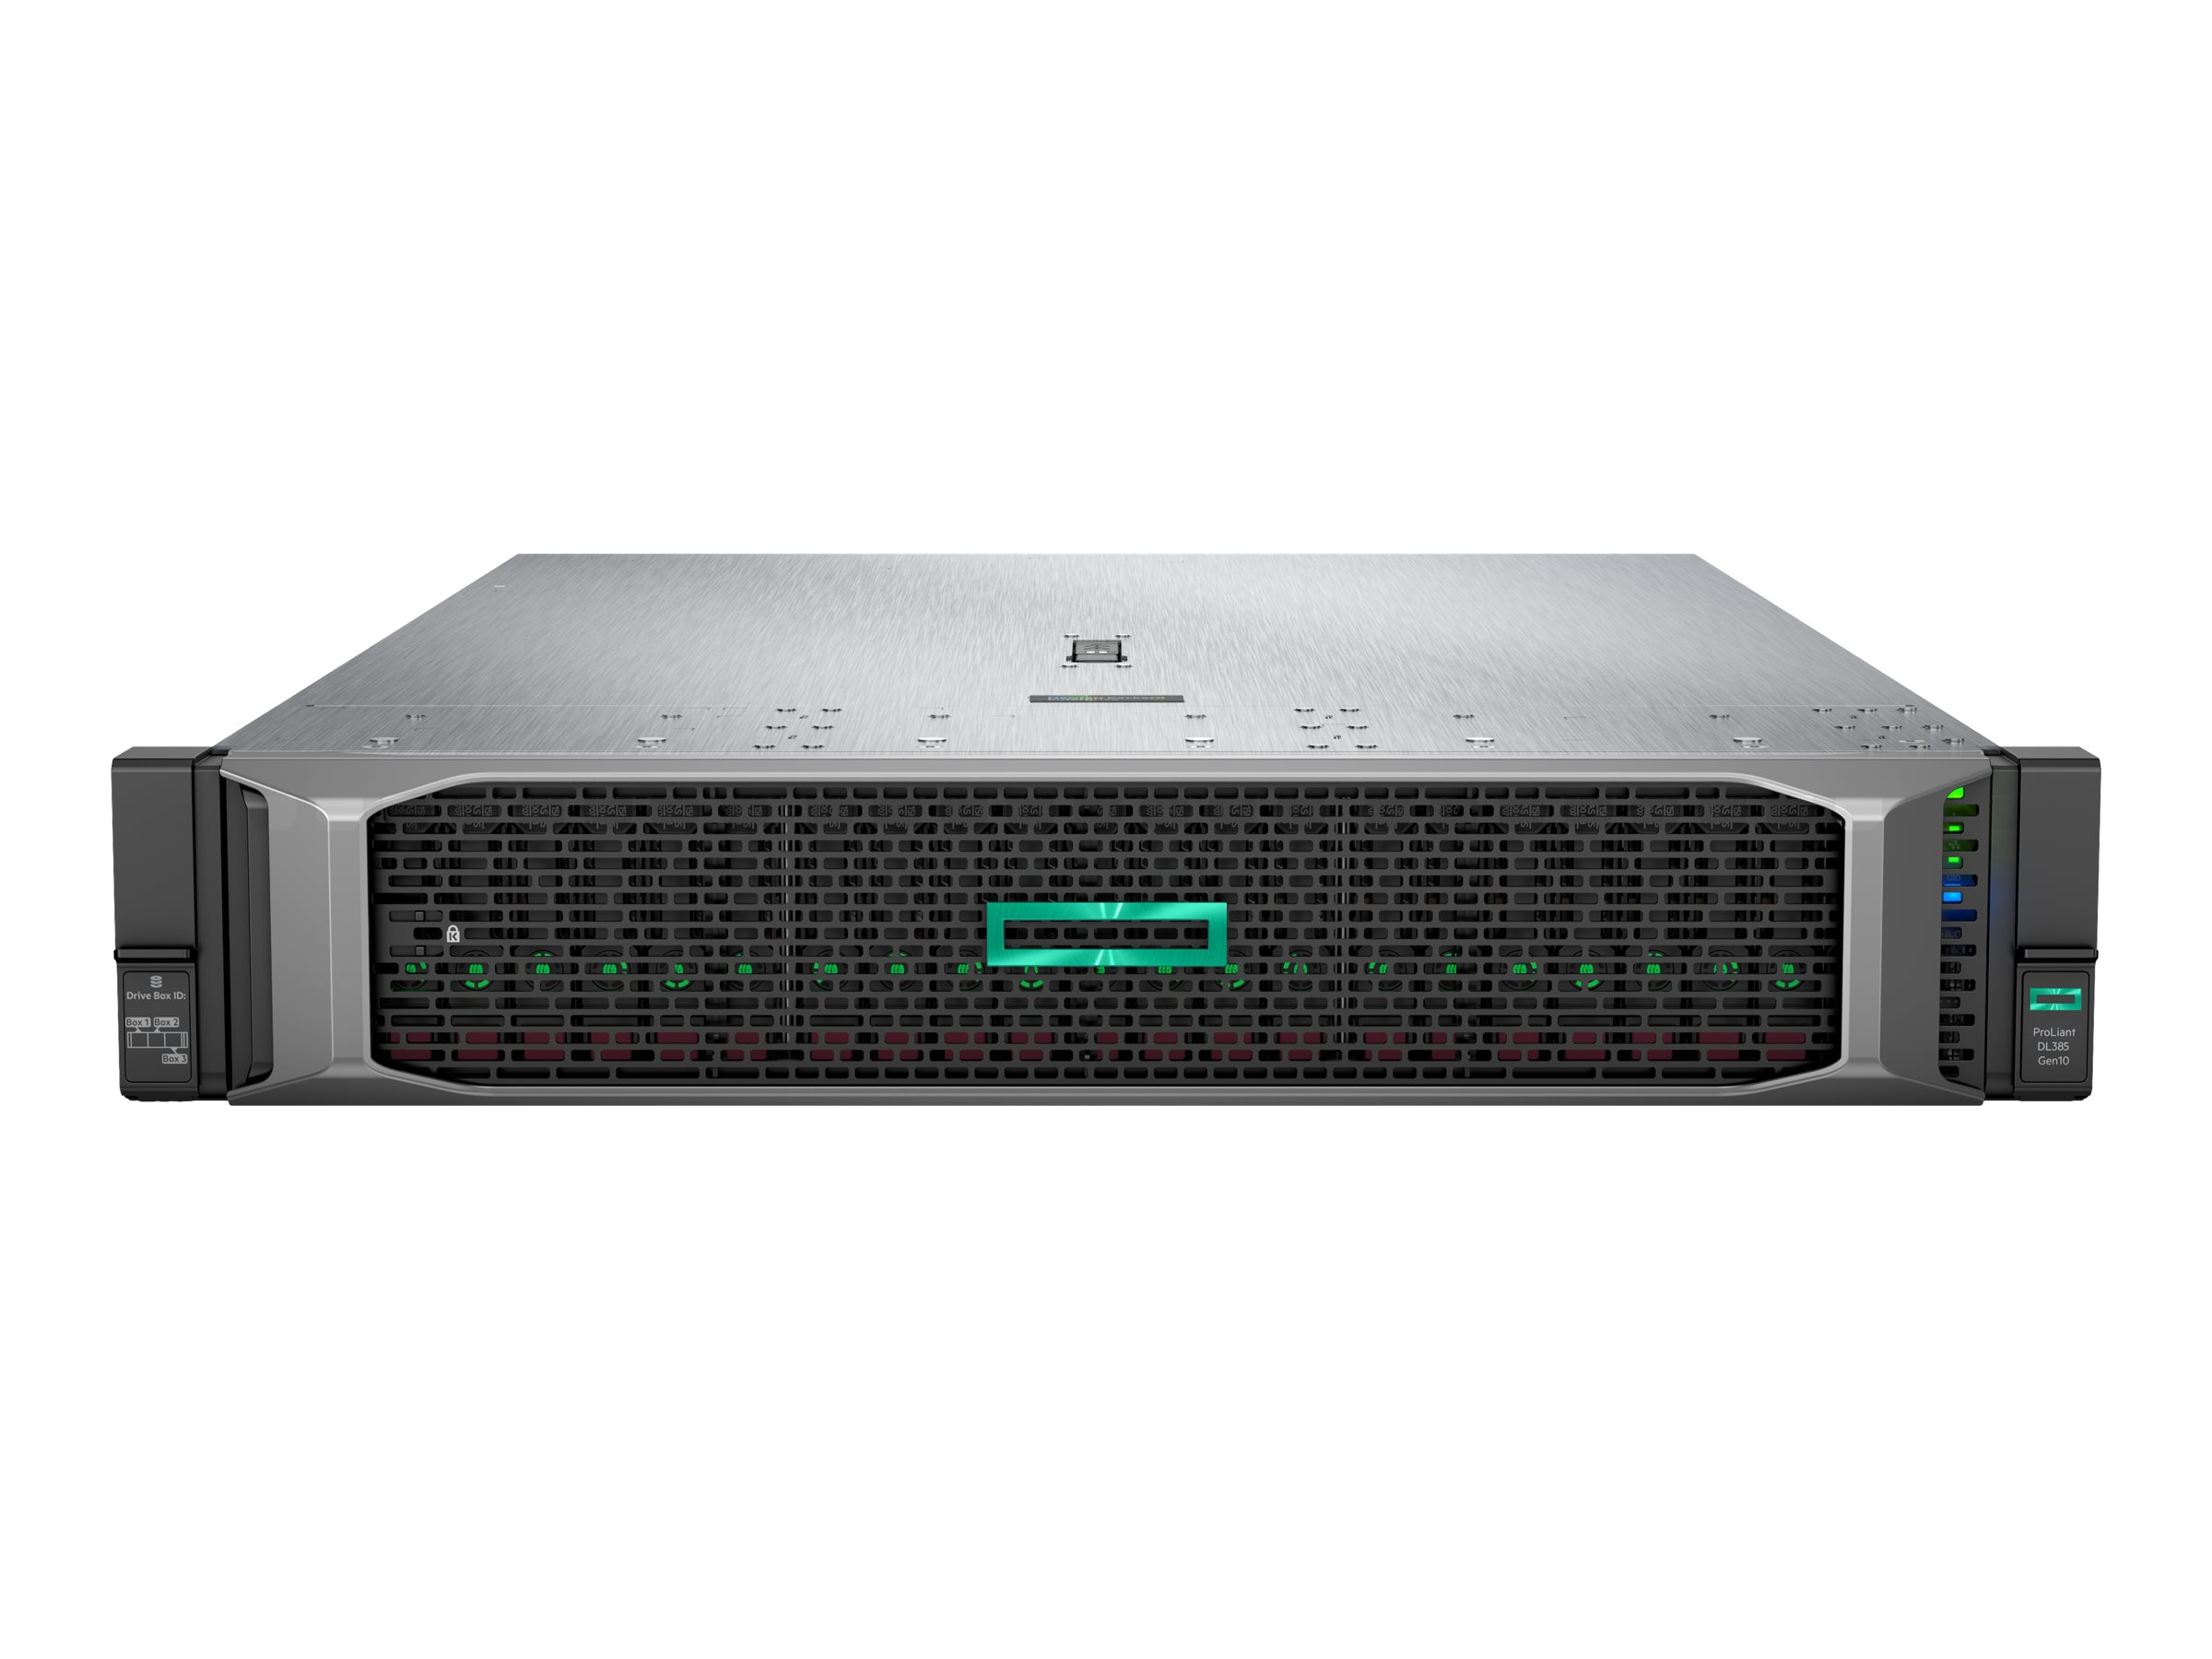 HPE ProLiant DL385 Gen10 - rack-mountable - EPYC 7301 2.2 GHz - 32 GB - 600 GB